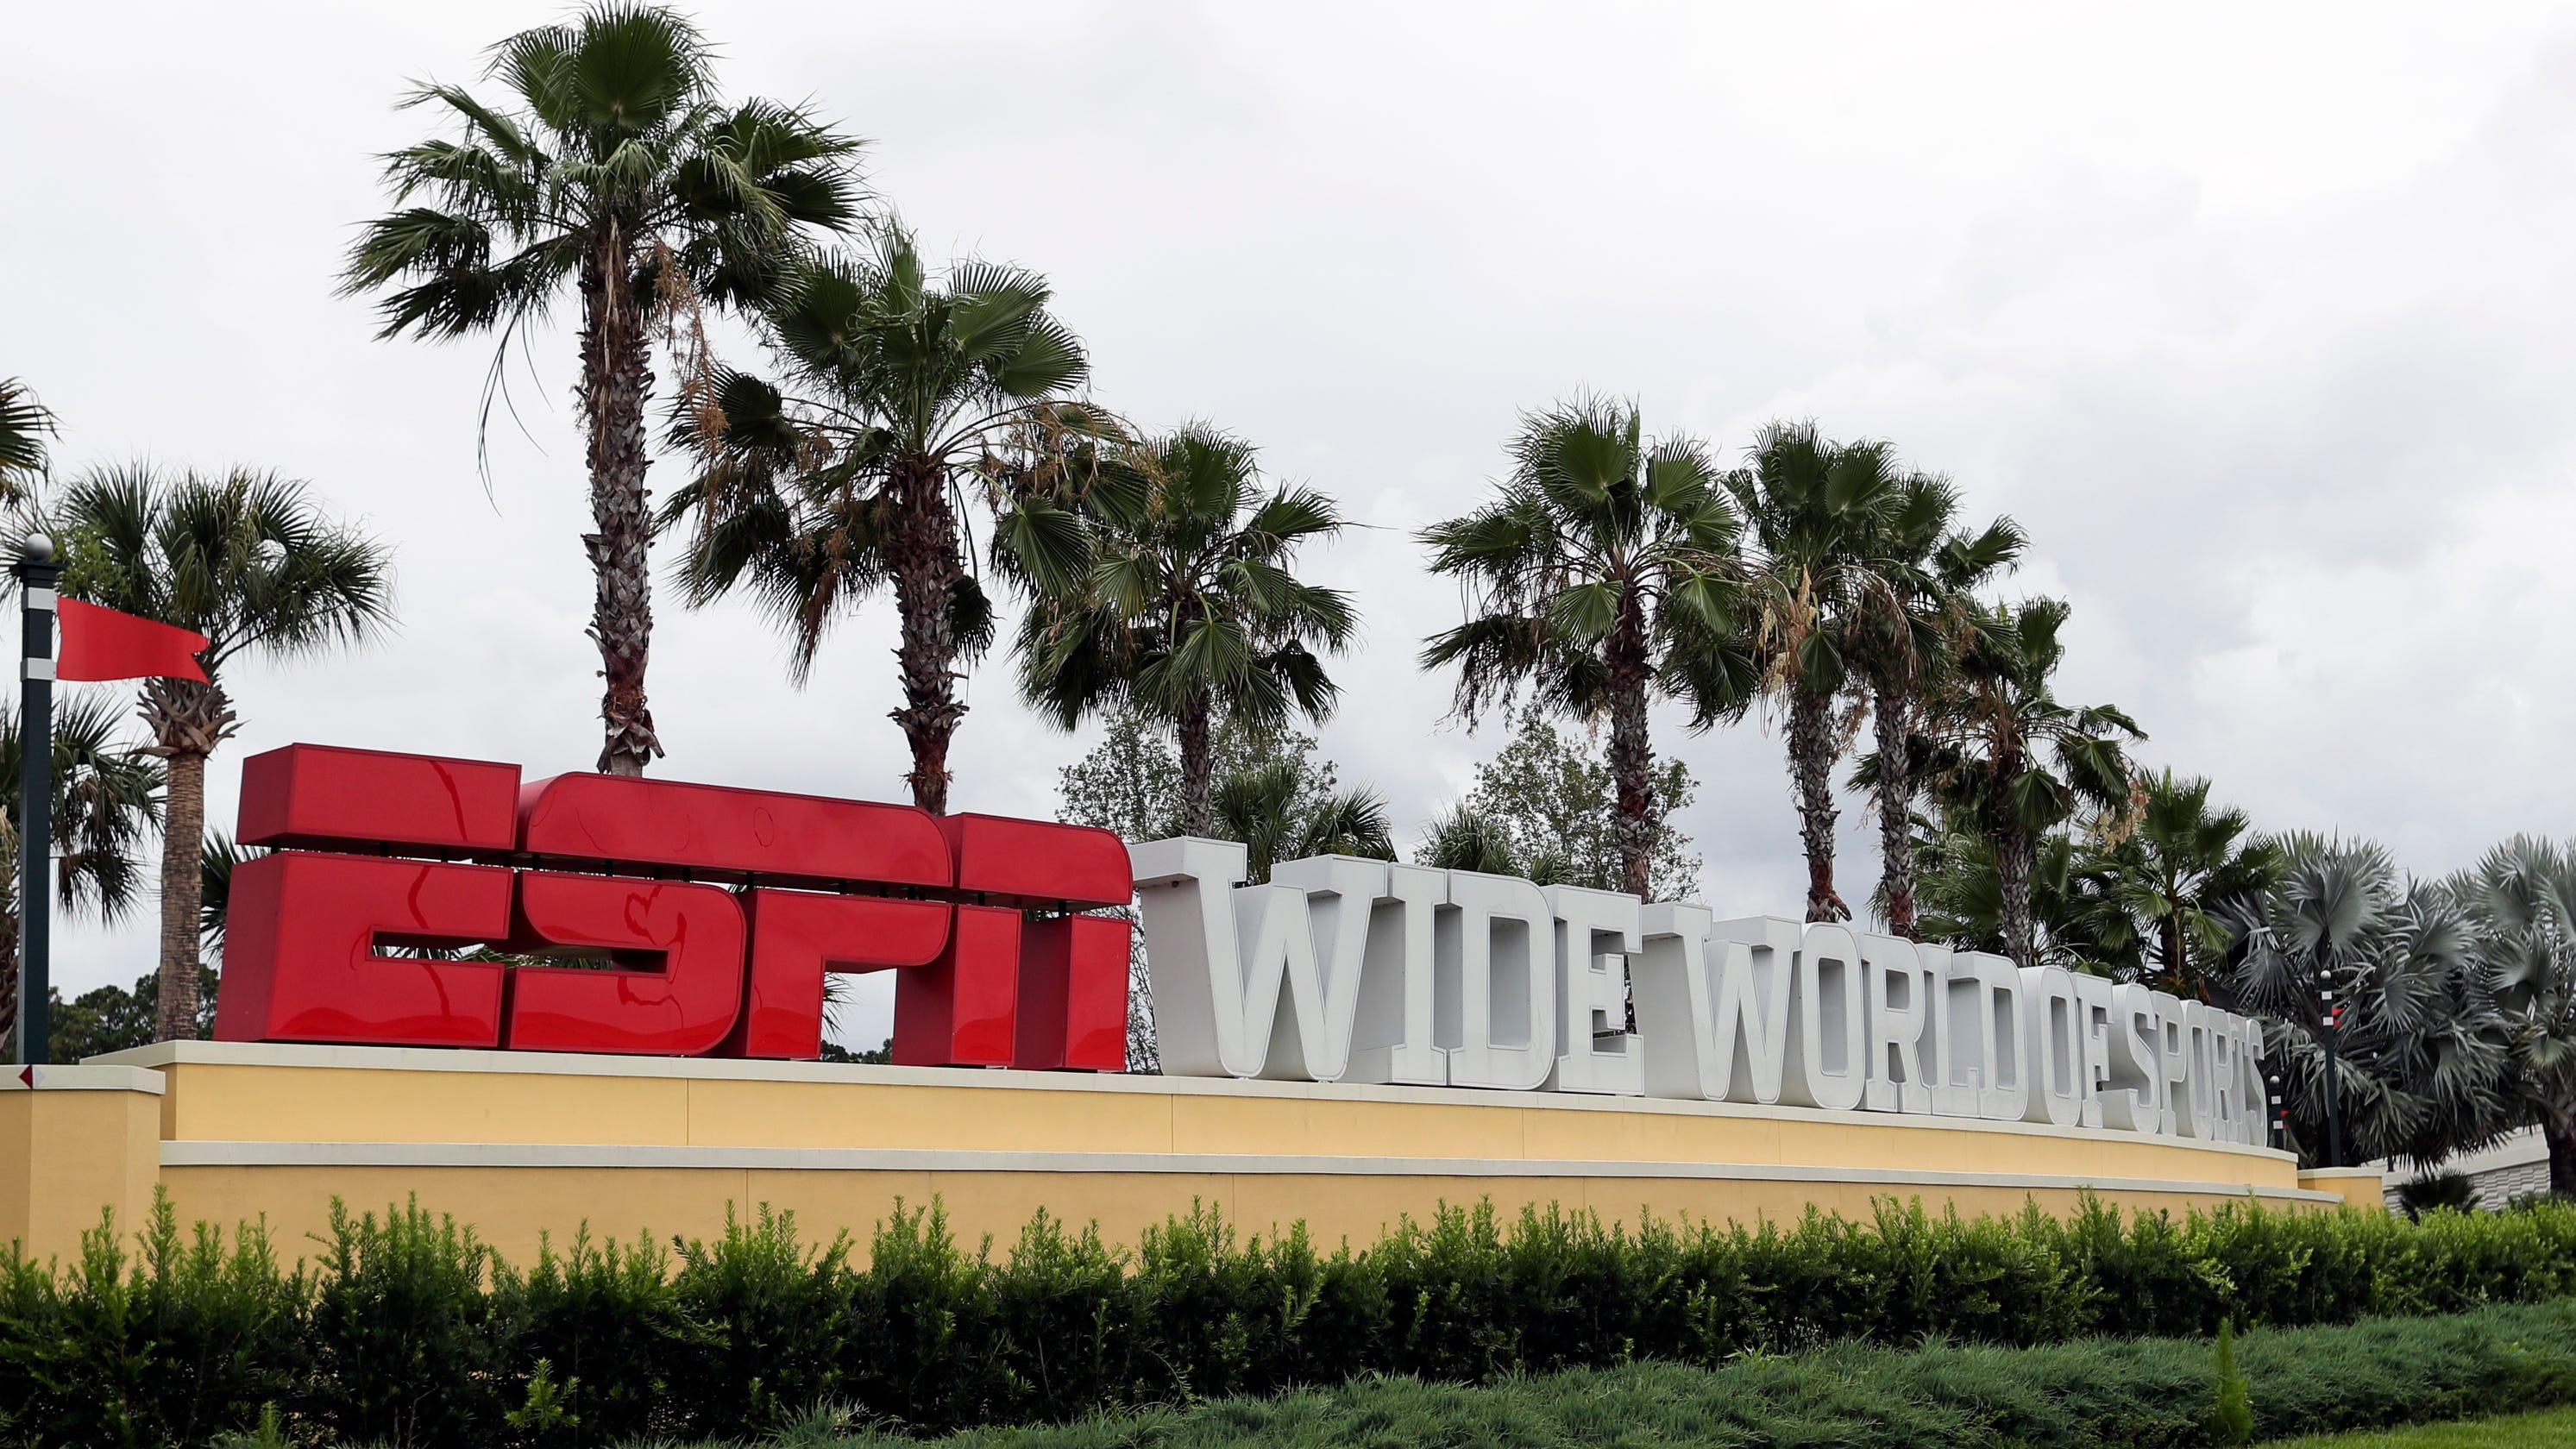 Rising number of COVID-19 cases in Florida complicating NBA return